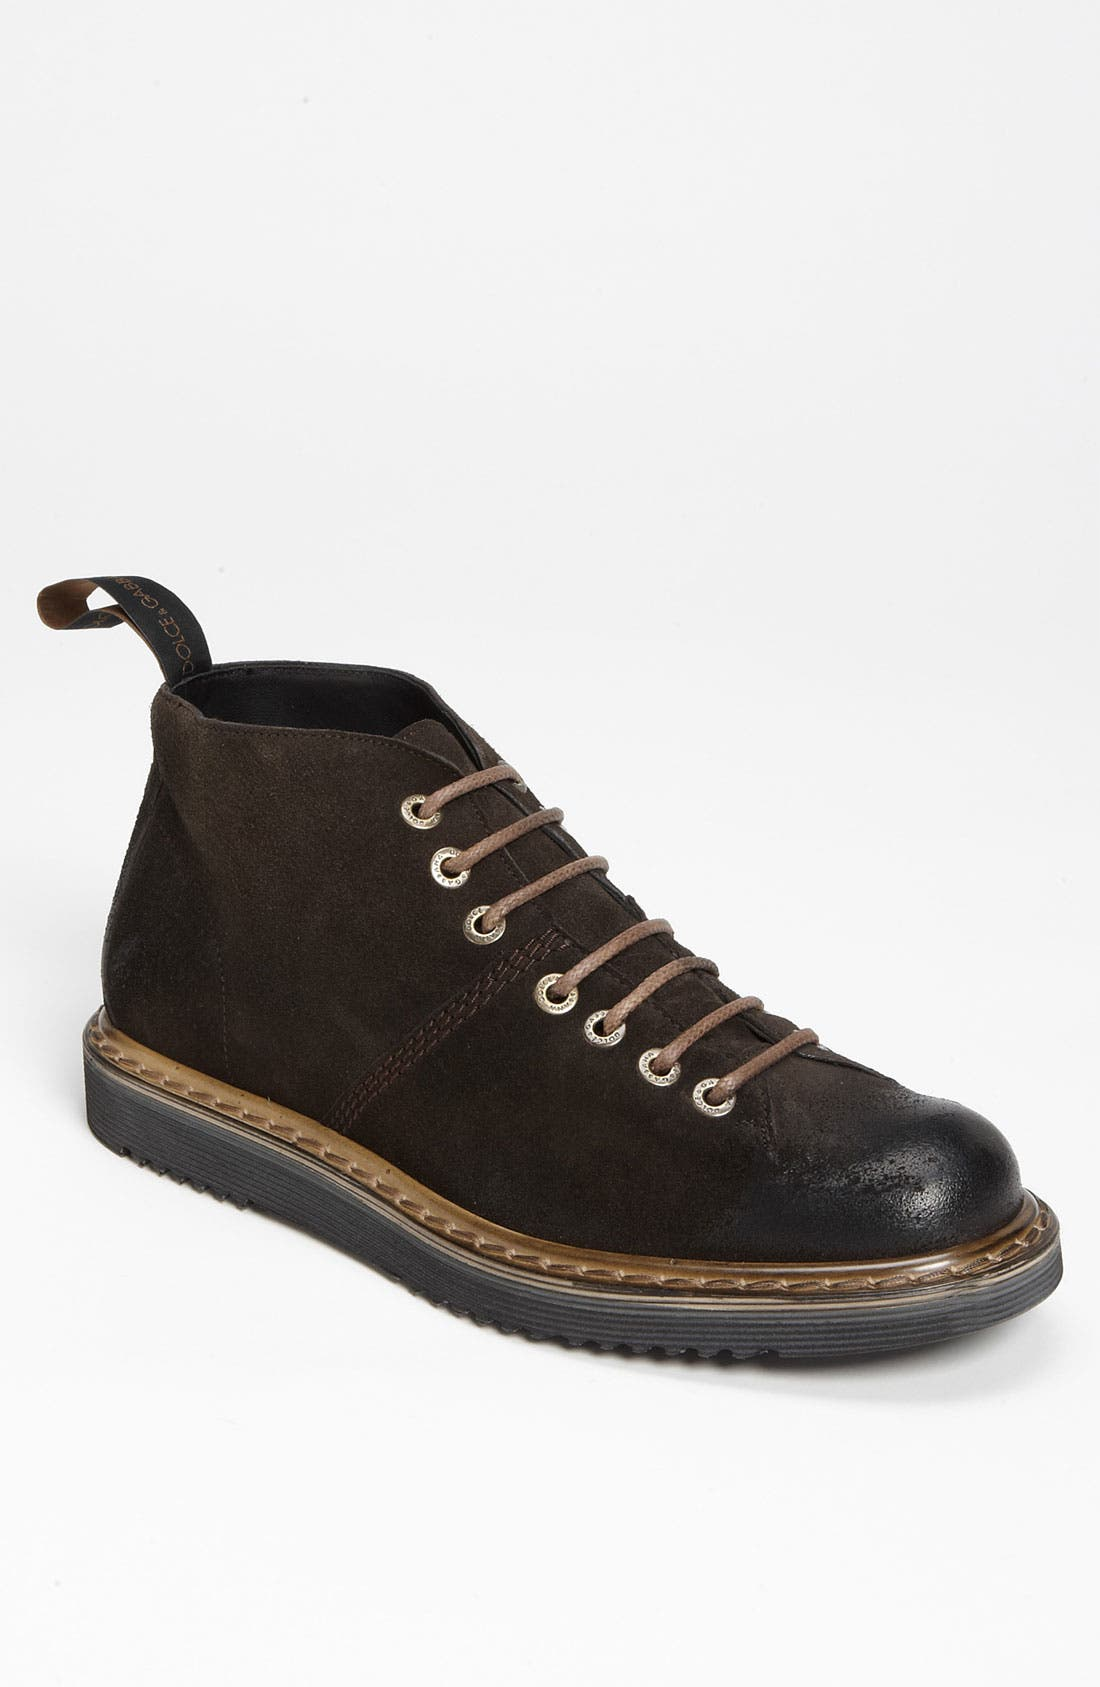 Main Image - Dolce&Gabbana Hiking Boot